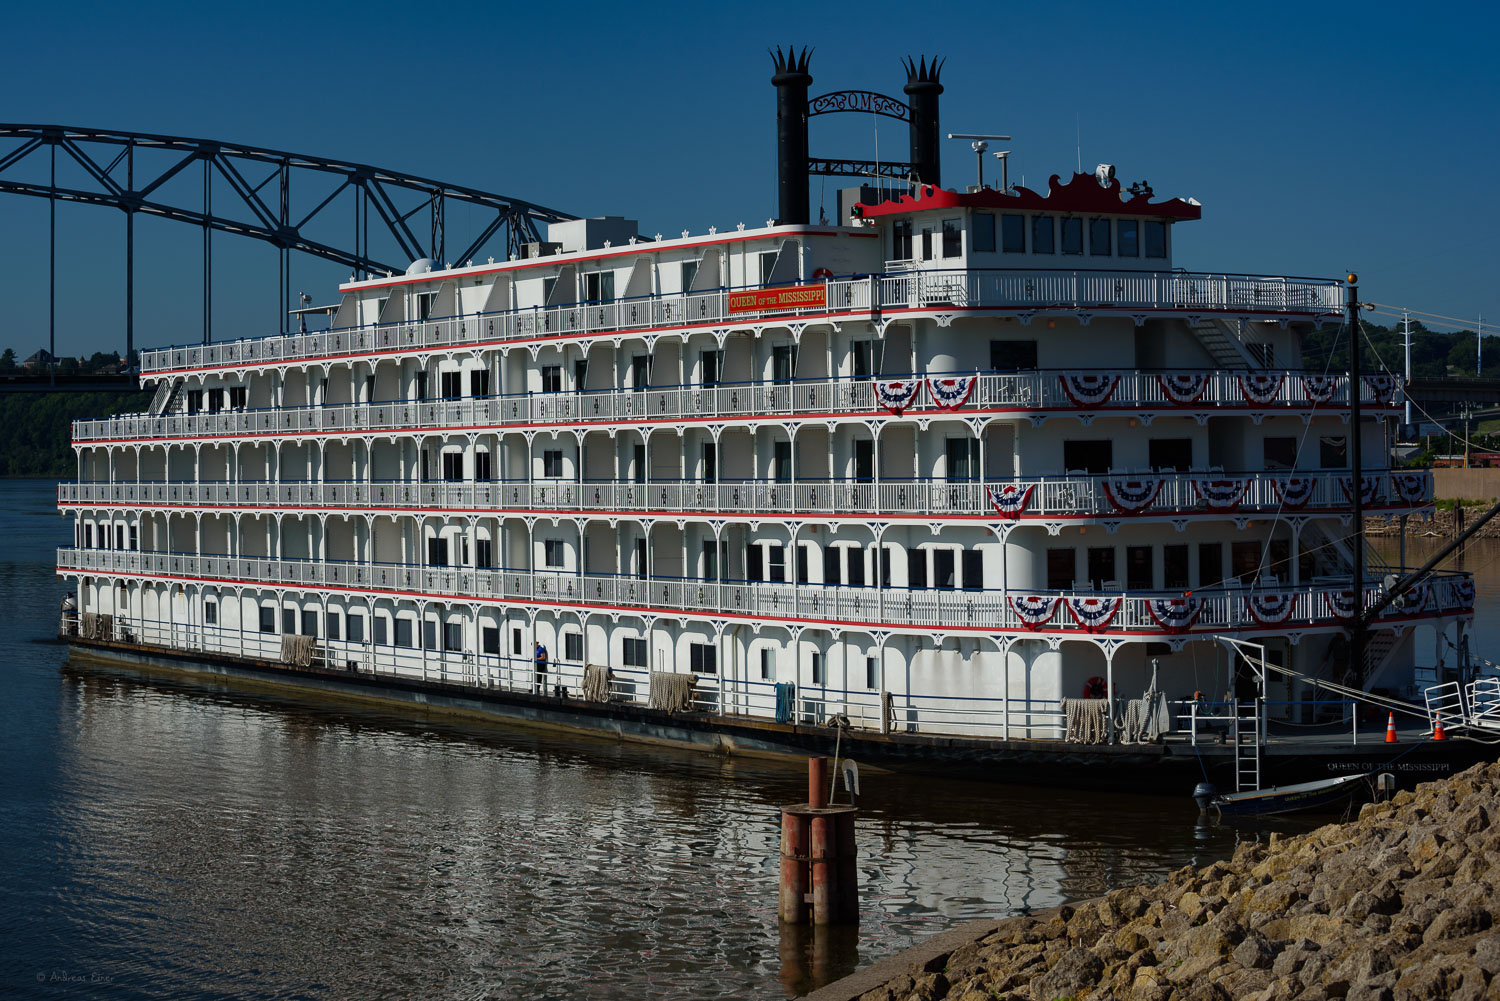 Queen of the Mississippi, Dubuque, Iowa